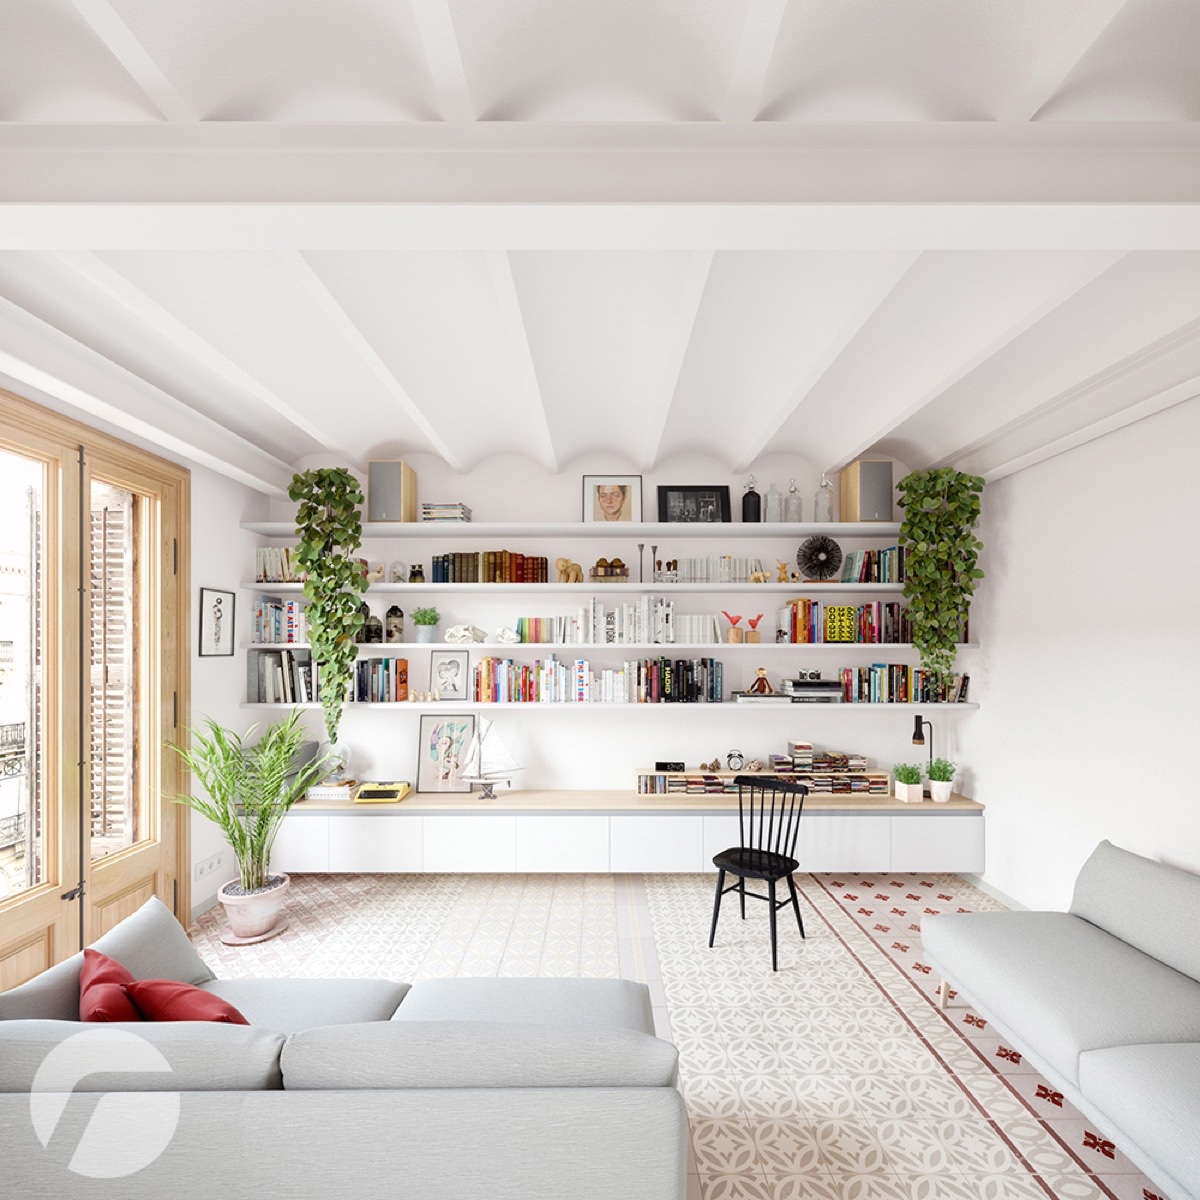 10 stunning apartments that show off the beauty of nordic interior design for Danish design home accessories